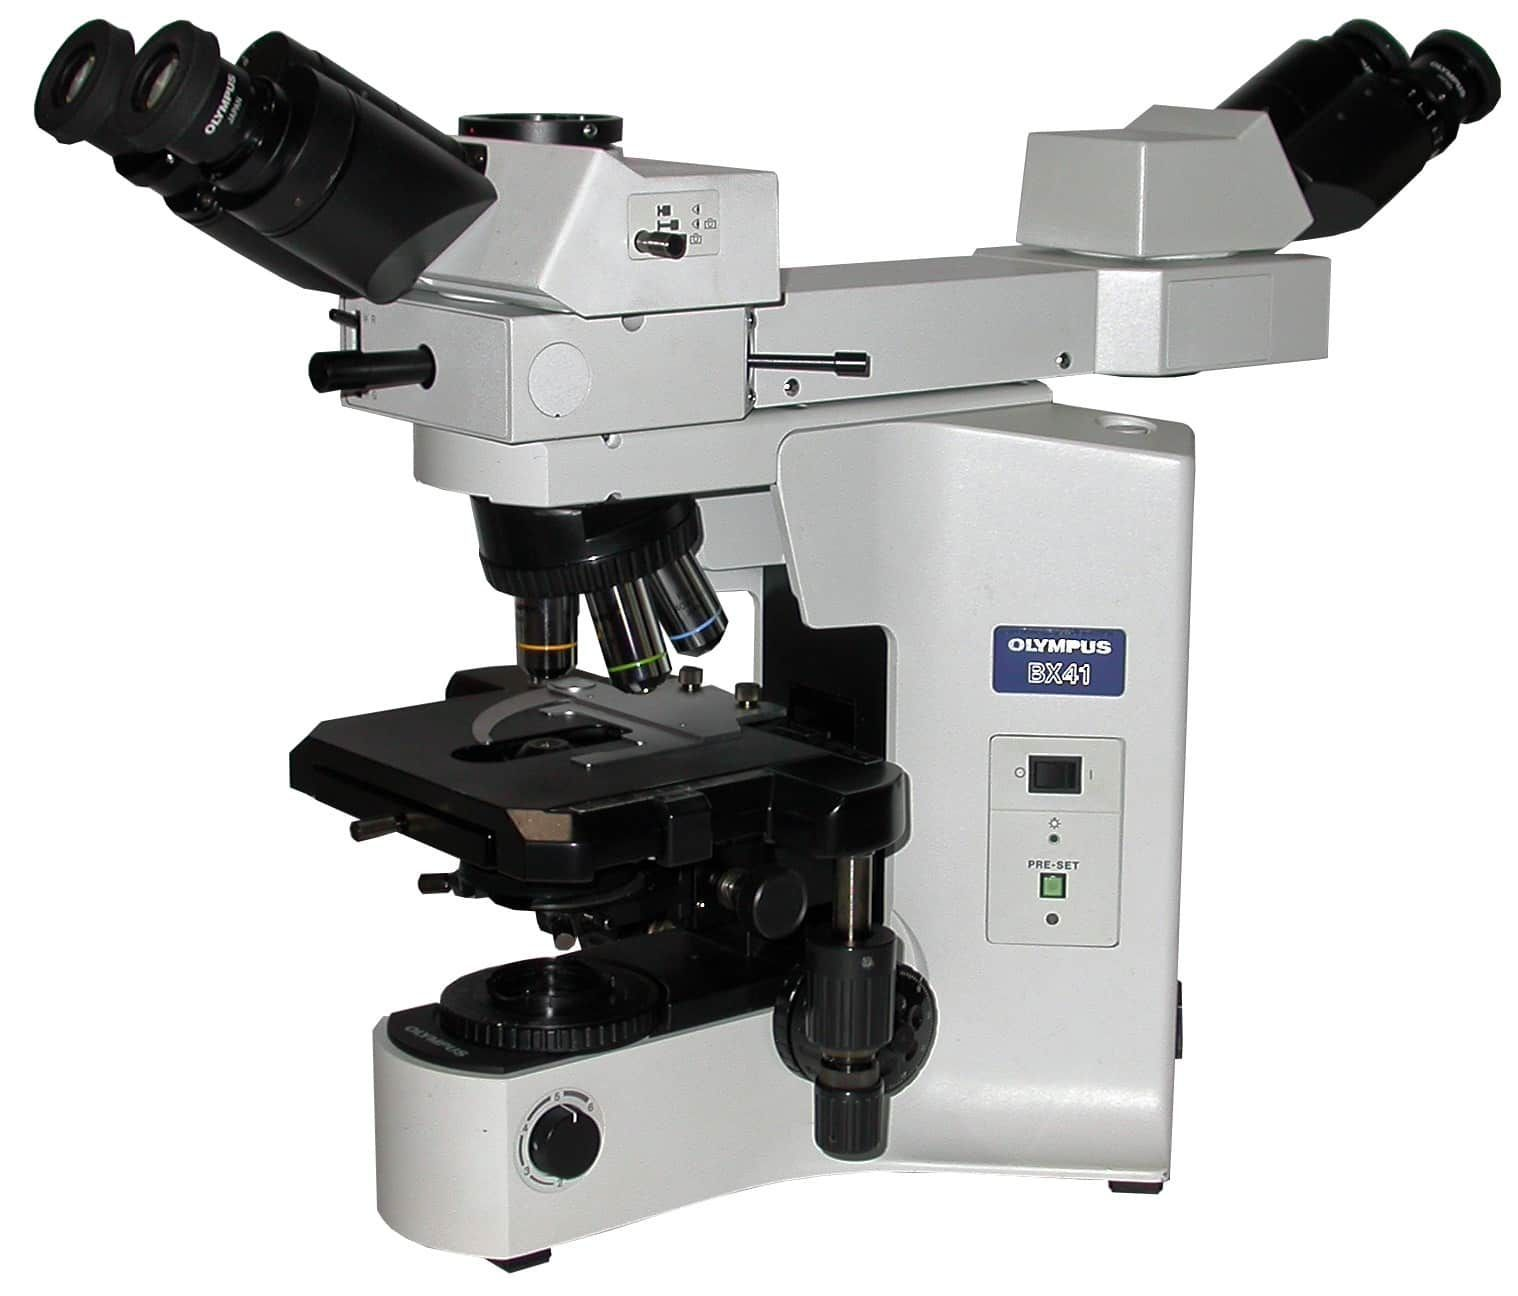 OLYMPUS BX41 DUAL HEAD FRONT TO BACK DISCUSSION MICROSCOPE WITH PLAN 4X, 10X, 20X, 40X & 60X OBJECTIVES